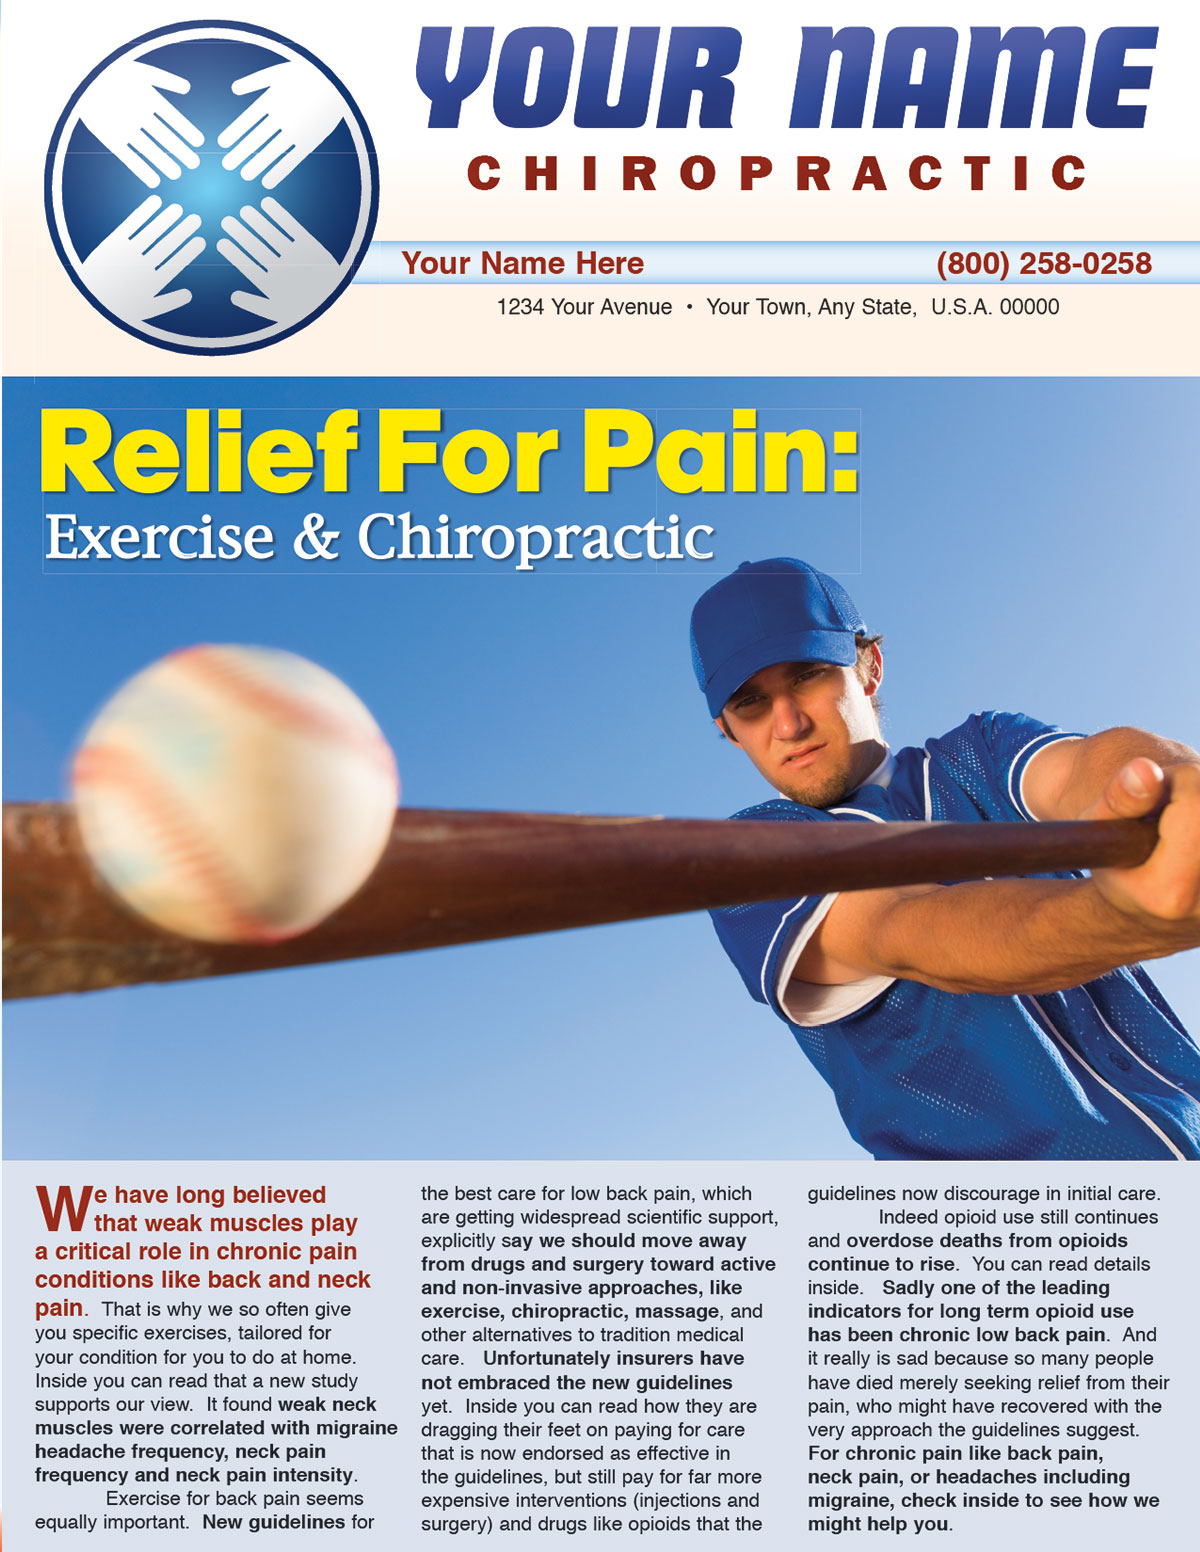 Relief for Pain: Exercise and Chiropractic